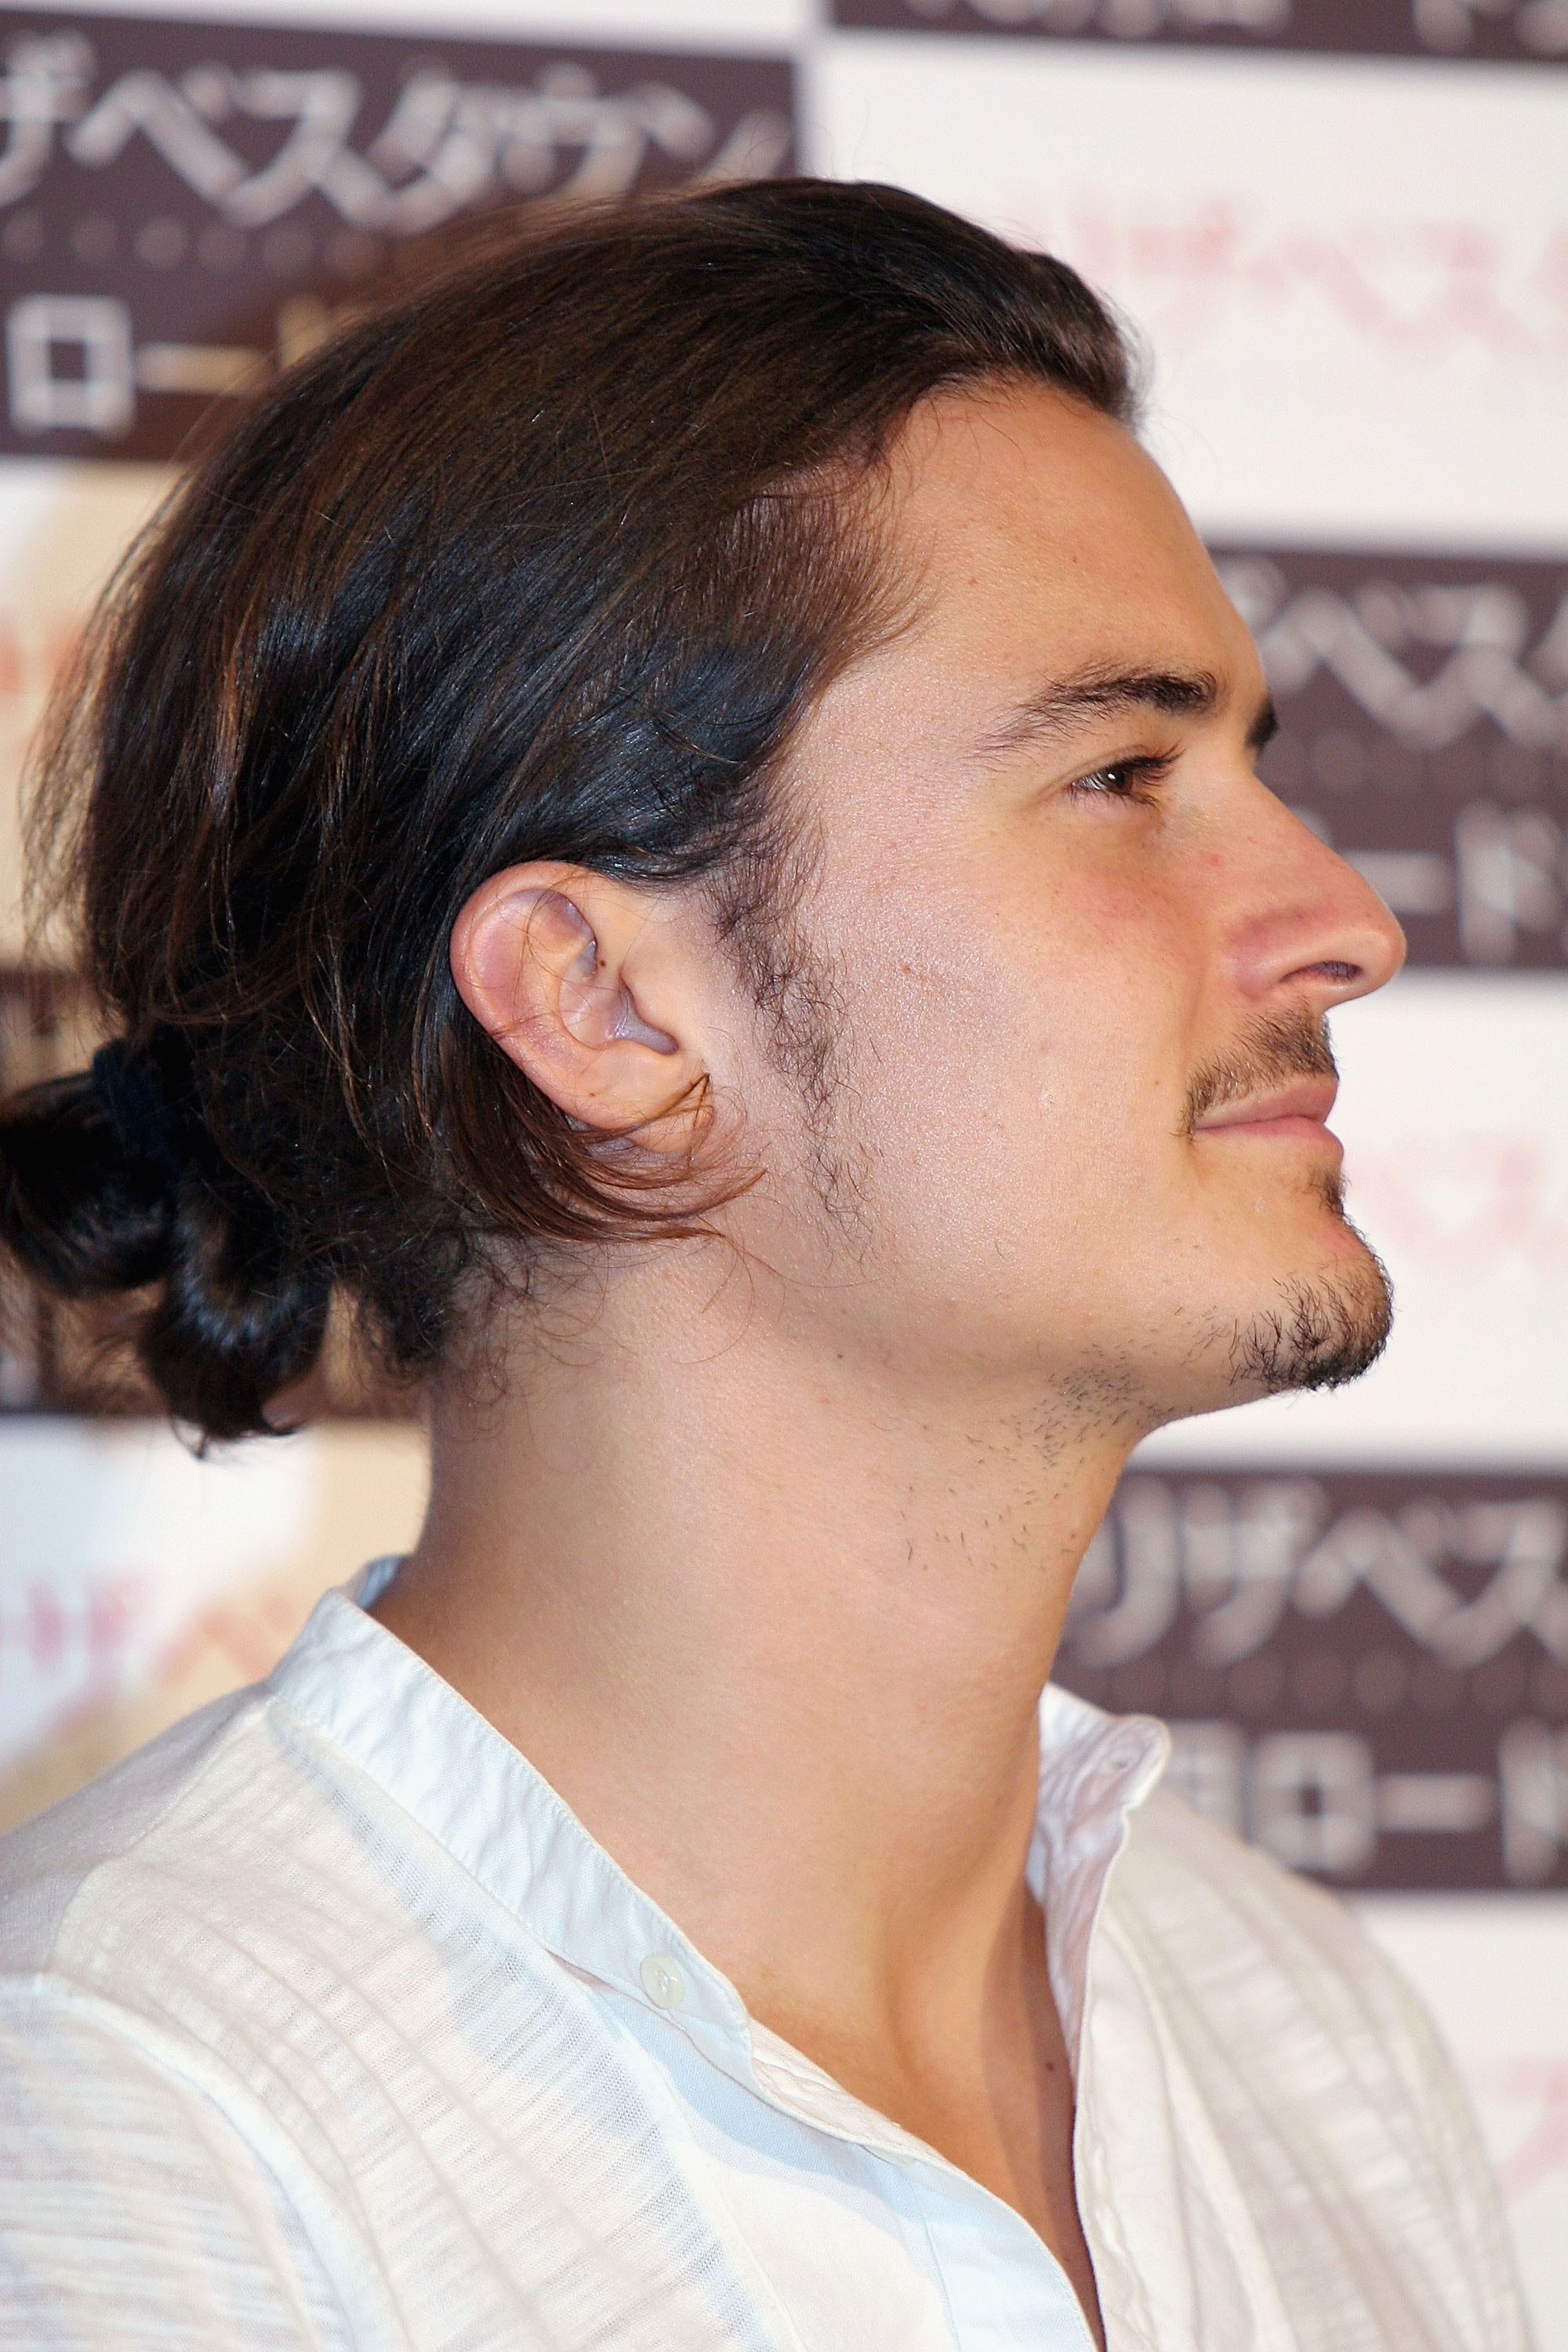 """TOKYO, JAPAN - AUGUST 3: Actor Orlando Bloom attends a press conference to promote the film """"Elizabethtown """" on August 3, 2005 in Tokyo, Japan. The film opens in Japan during October, 2005.  (Photo by Koichi Kamoshida/Getty Images)"""